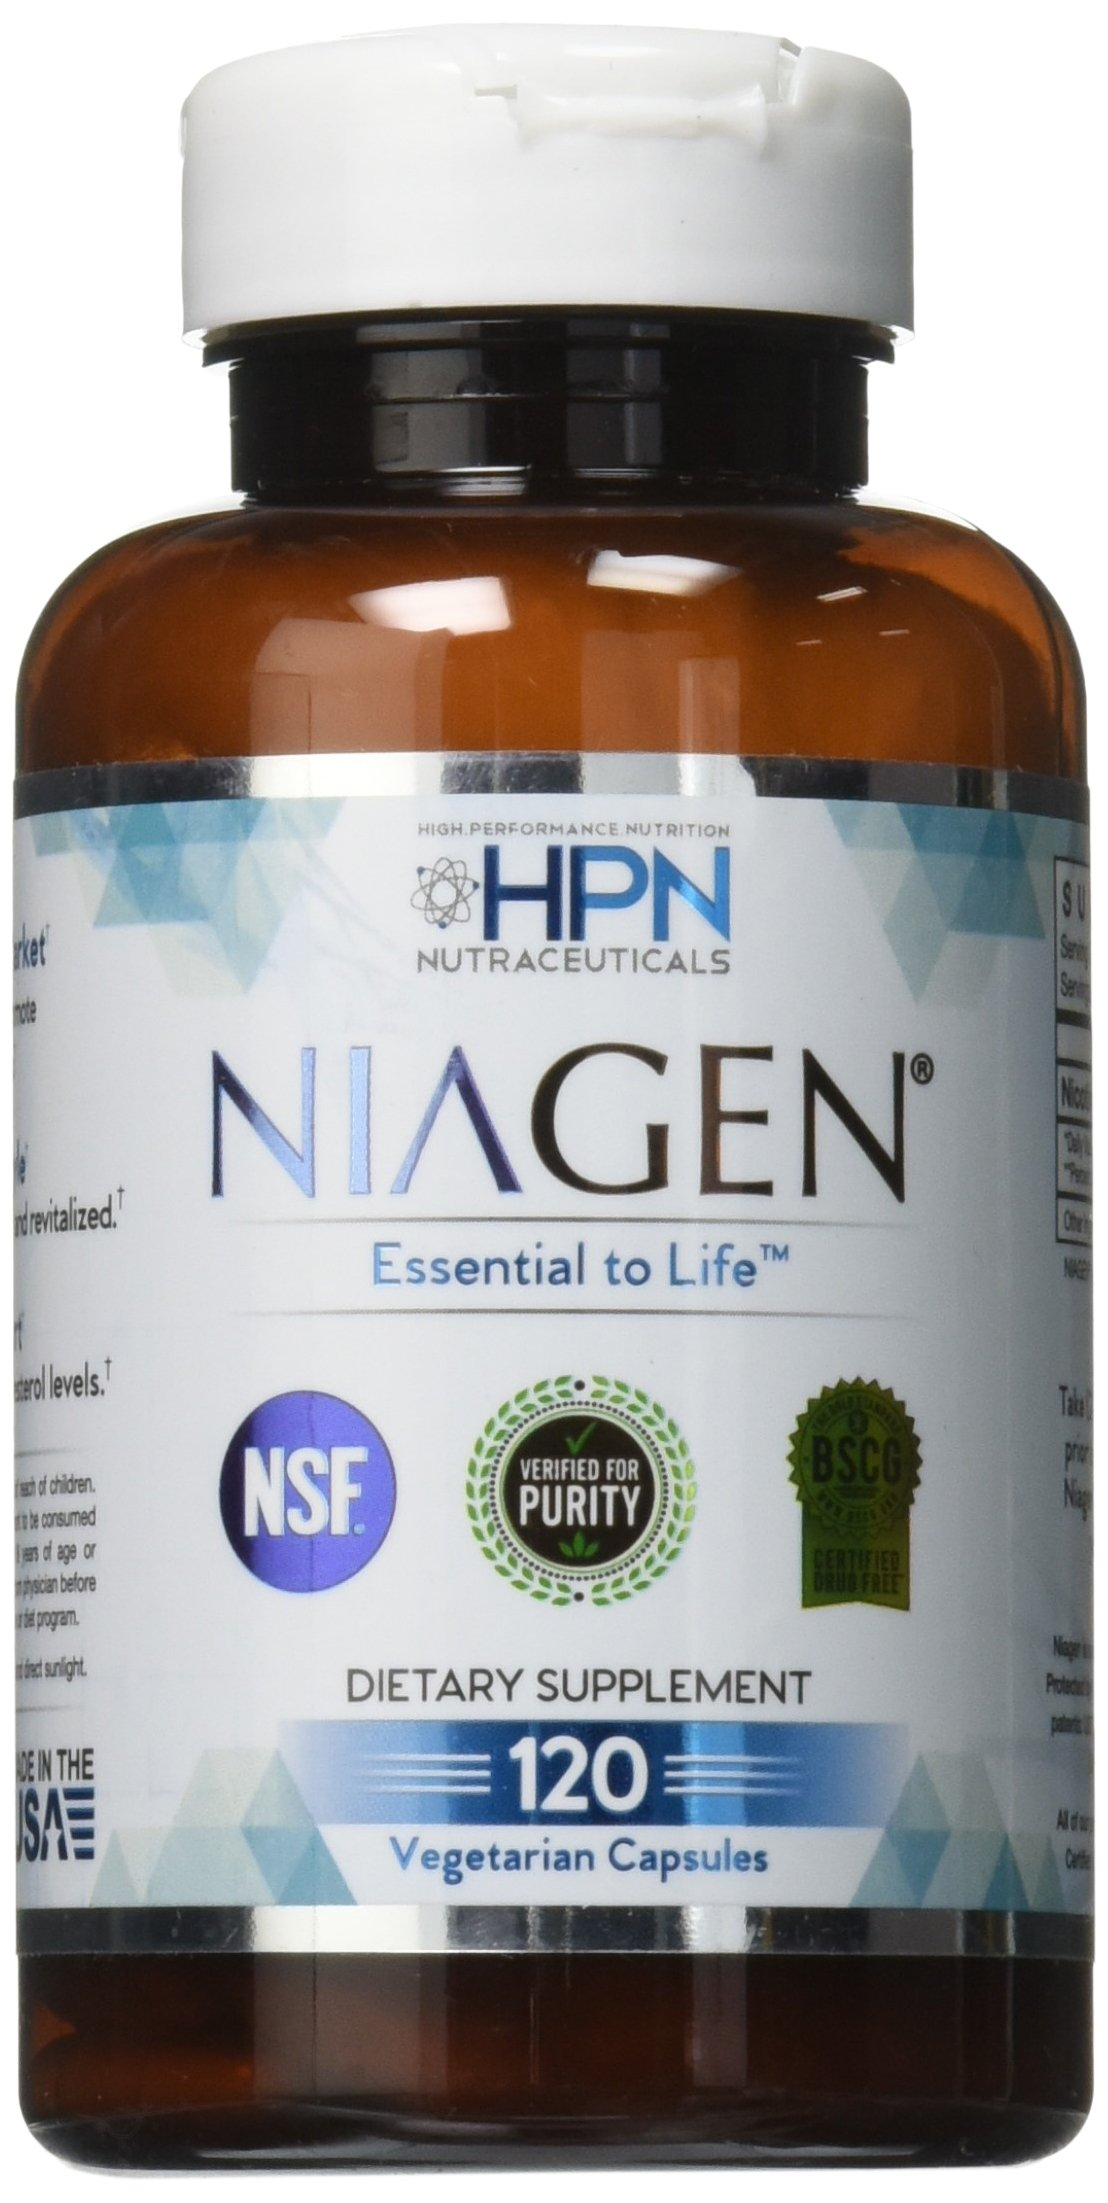 HPN Nutraceuticals Niagen Nicotinamide Riboside, Value Size, 2 Month Supply, a Trusted Chromadex Partner, NAD Plus Booster, Metabolic Repair, 250 mg per Serving, 120 Capsules